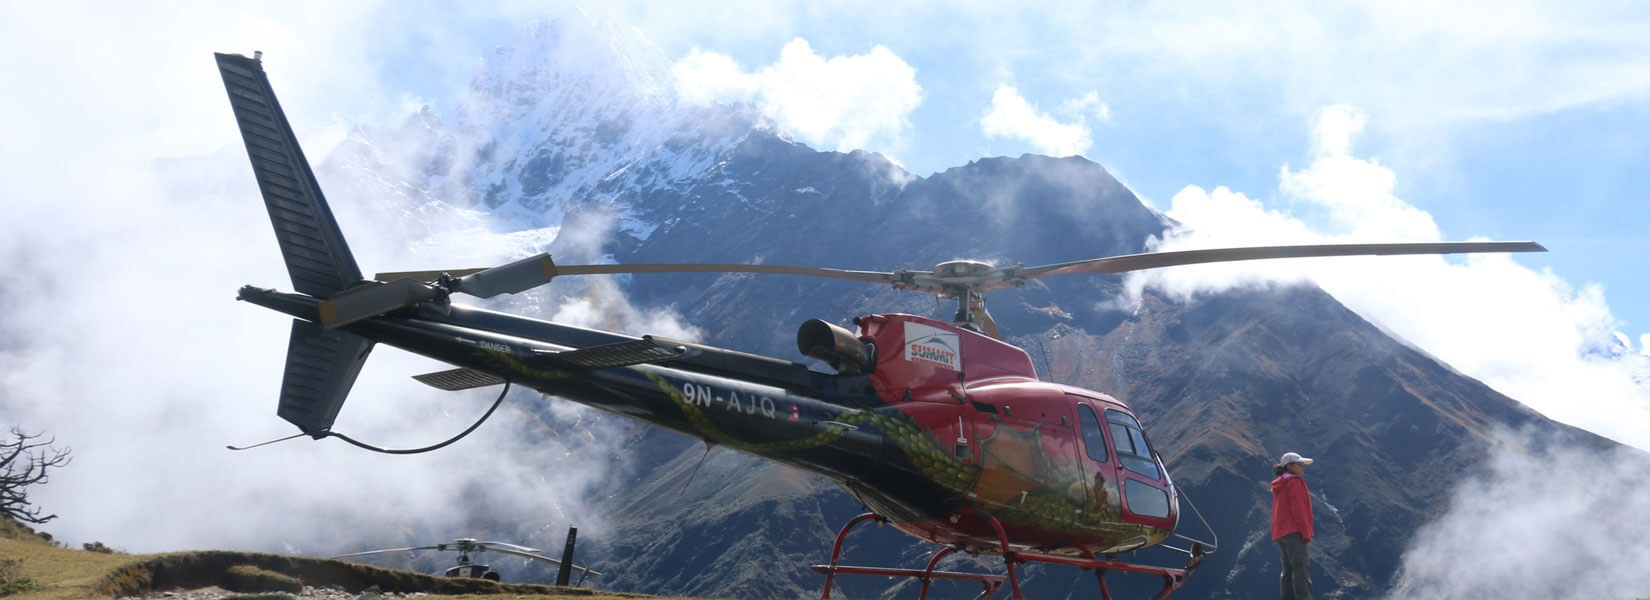 Mt. Everest Helicopter Tour